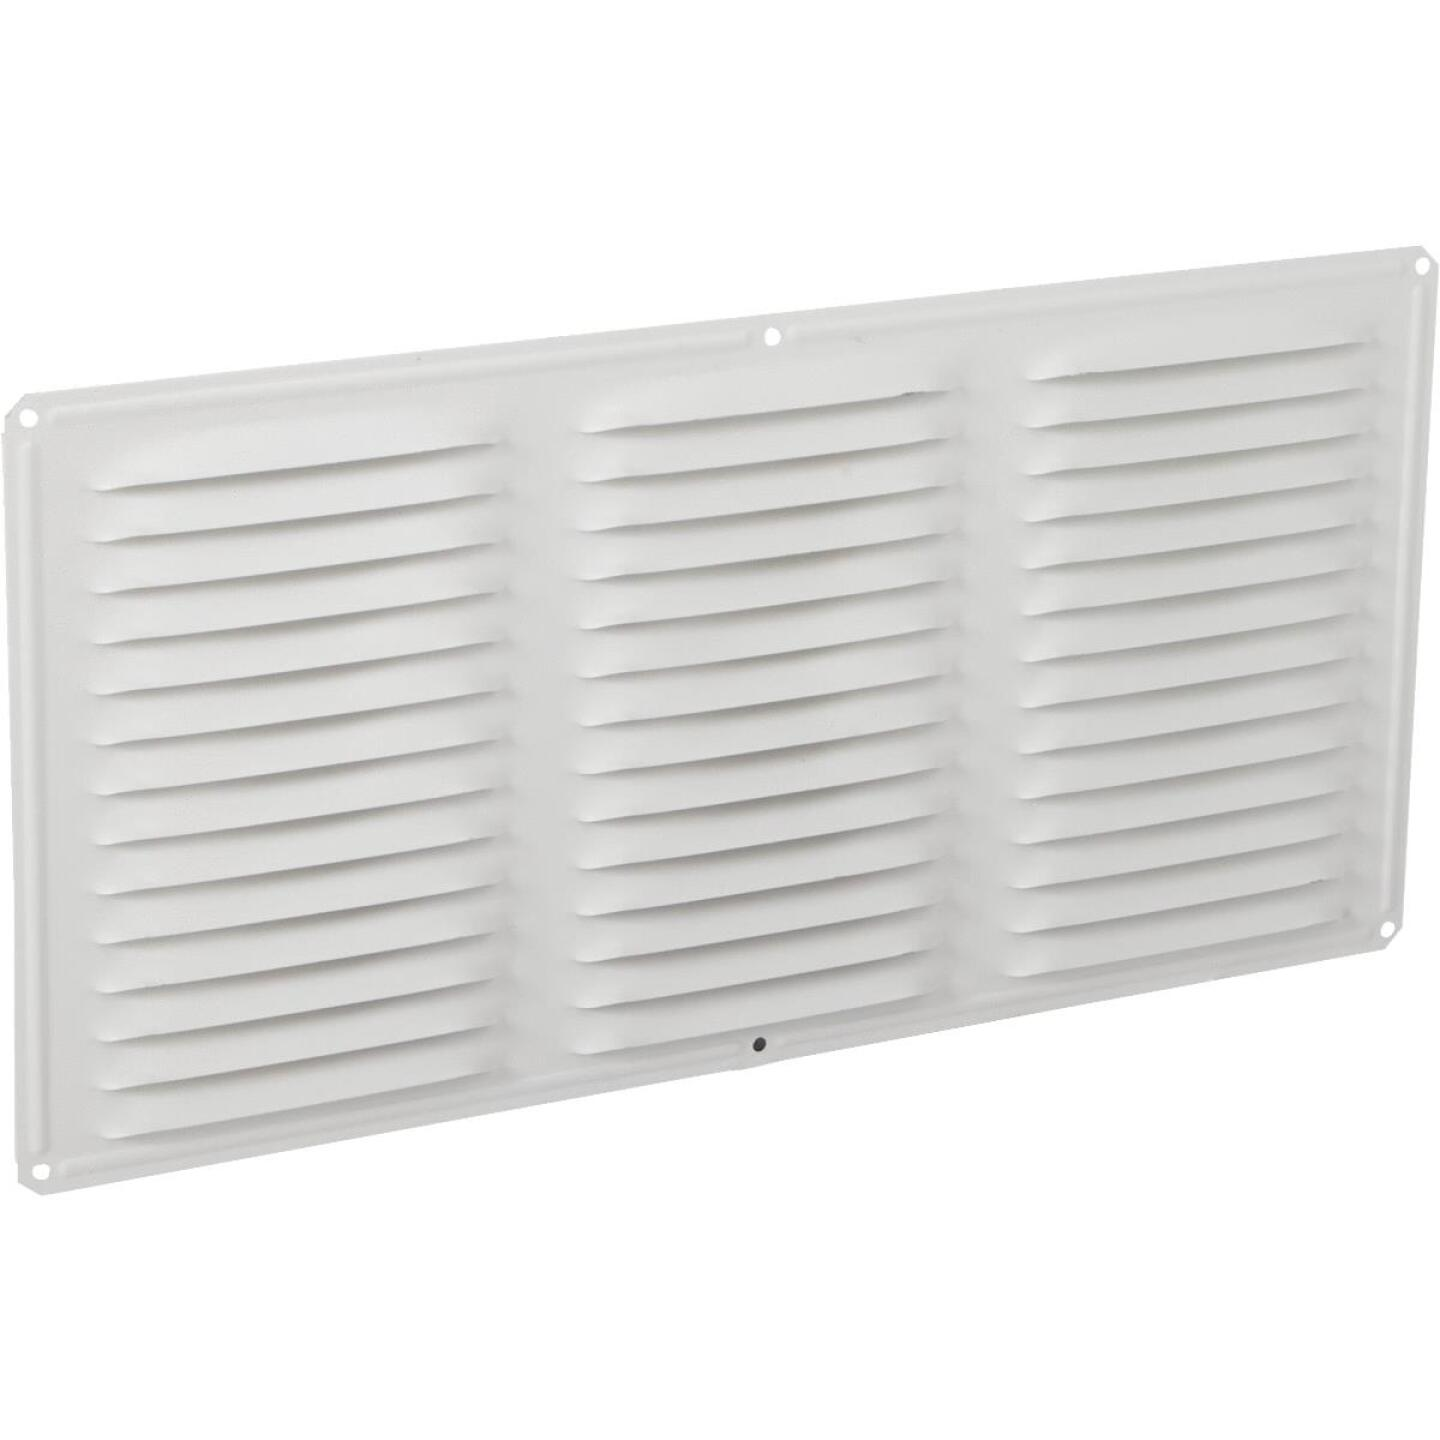 Air Vent 16 In. x 8 In. White Aluminum Under Eave Vent Image 1